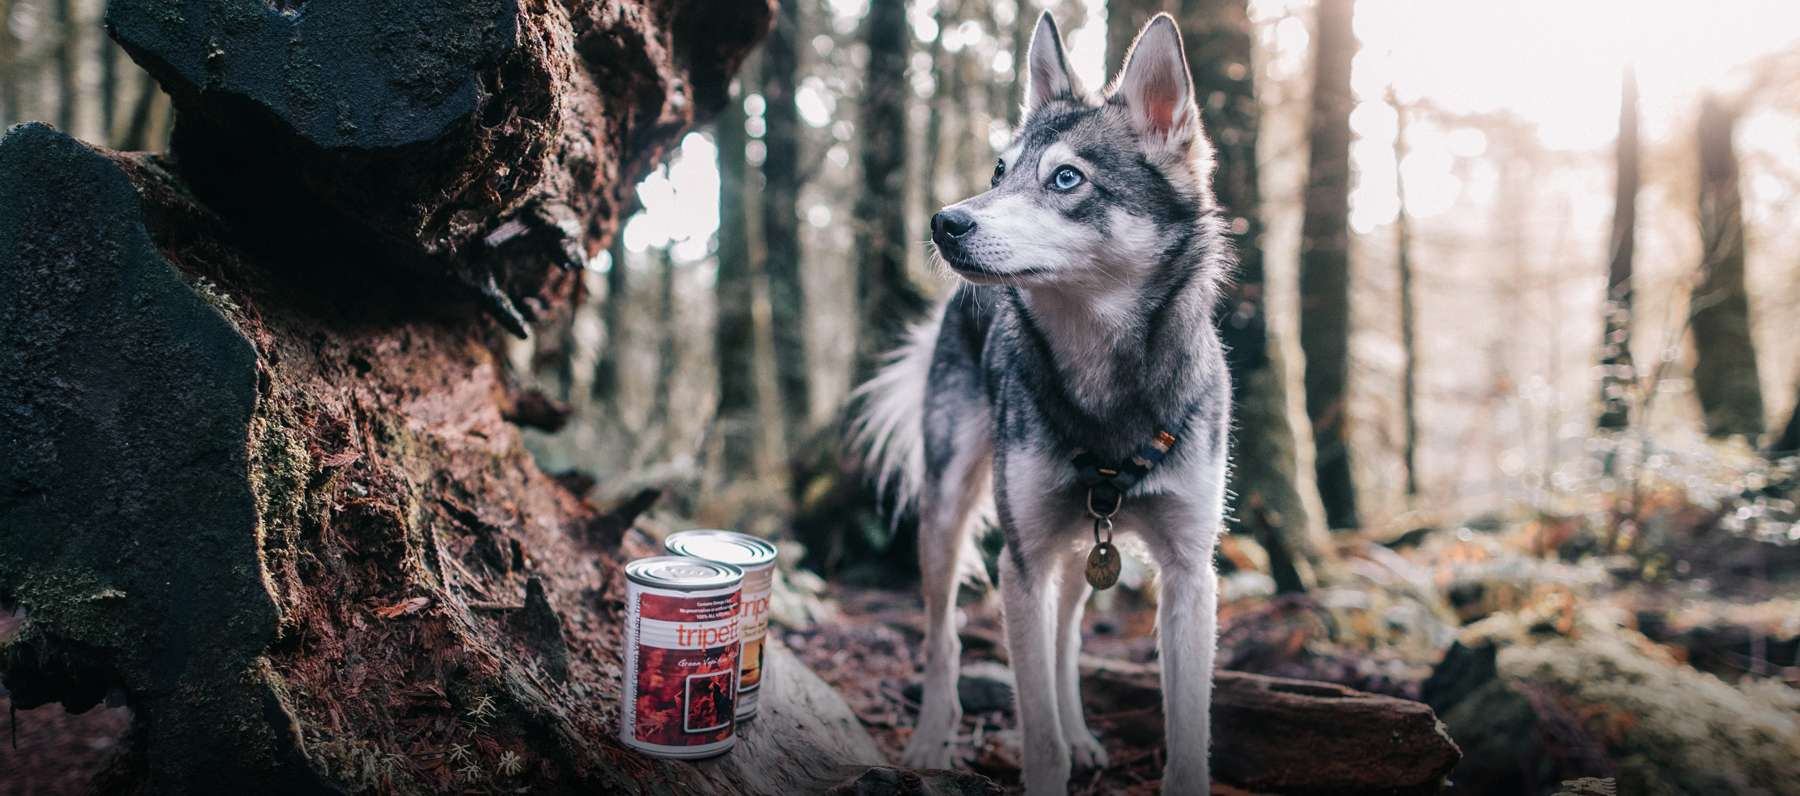 Young Husky amidst a forest with two cans of tripett variants